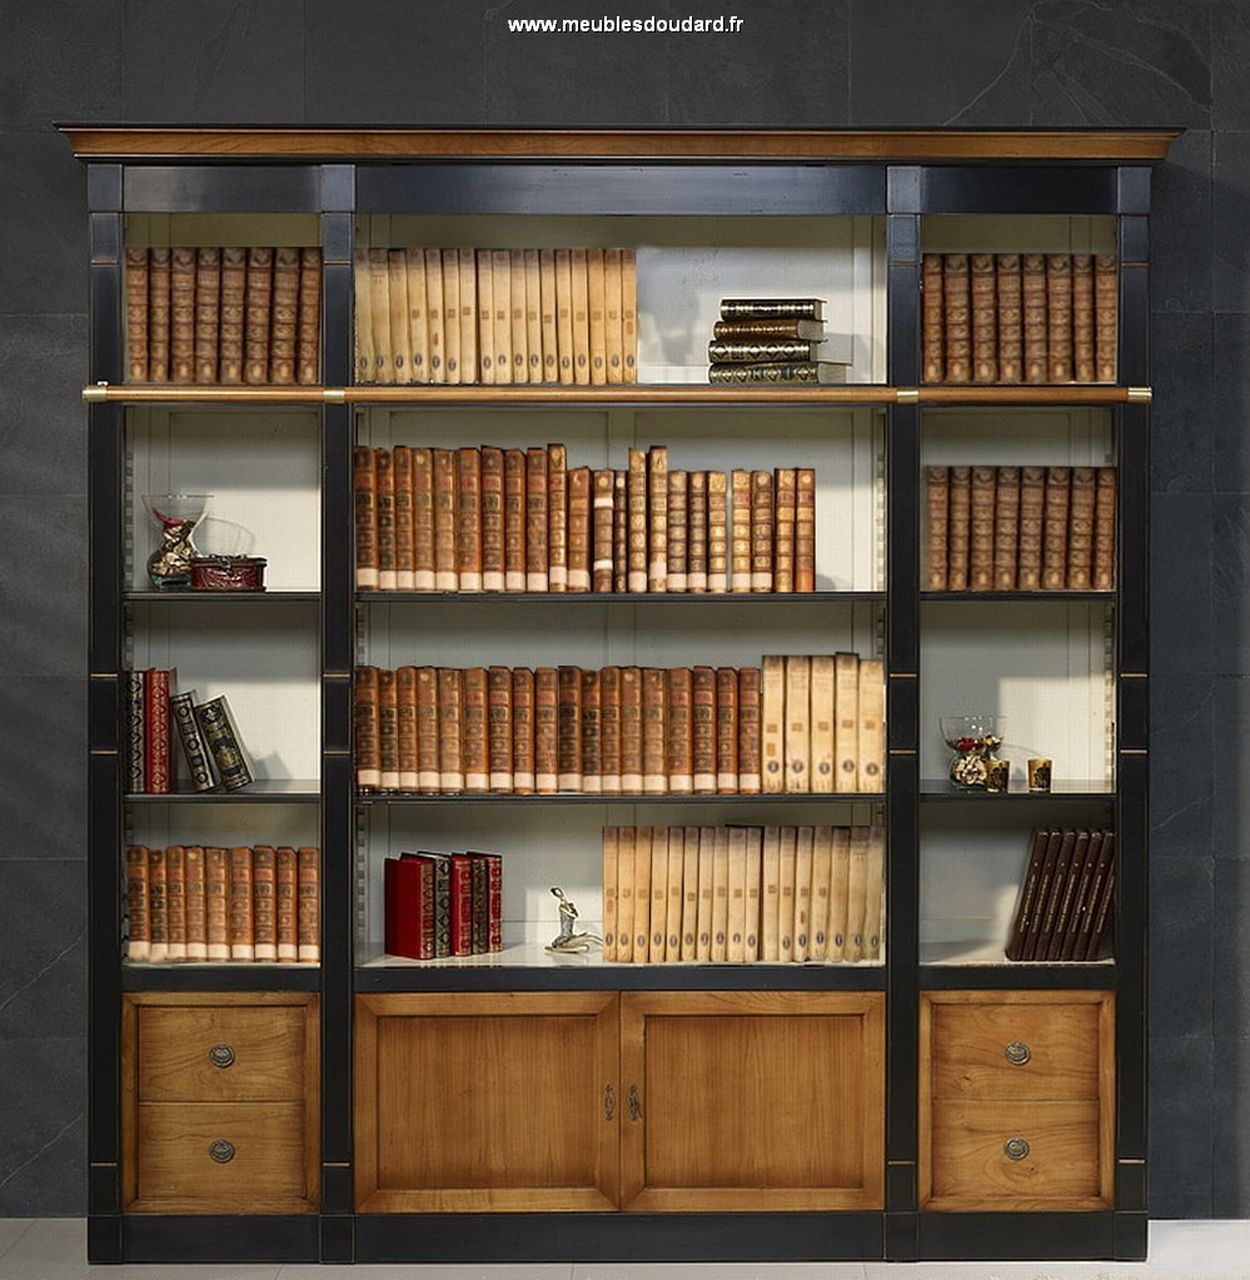 meuble biblioth que biblioth que merisier biblioth que directoire en bois massif. Black Bedroom Furniture Sets. Home Design Ideas